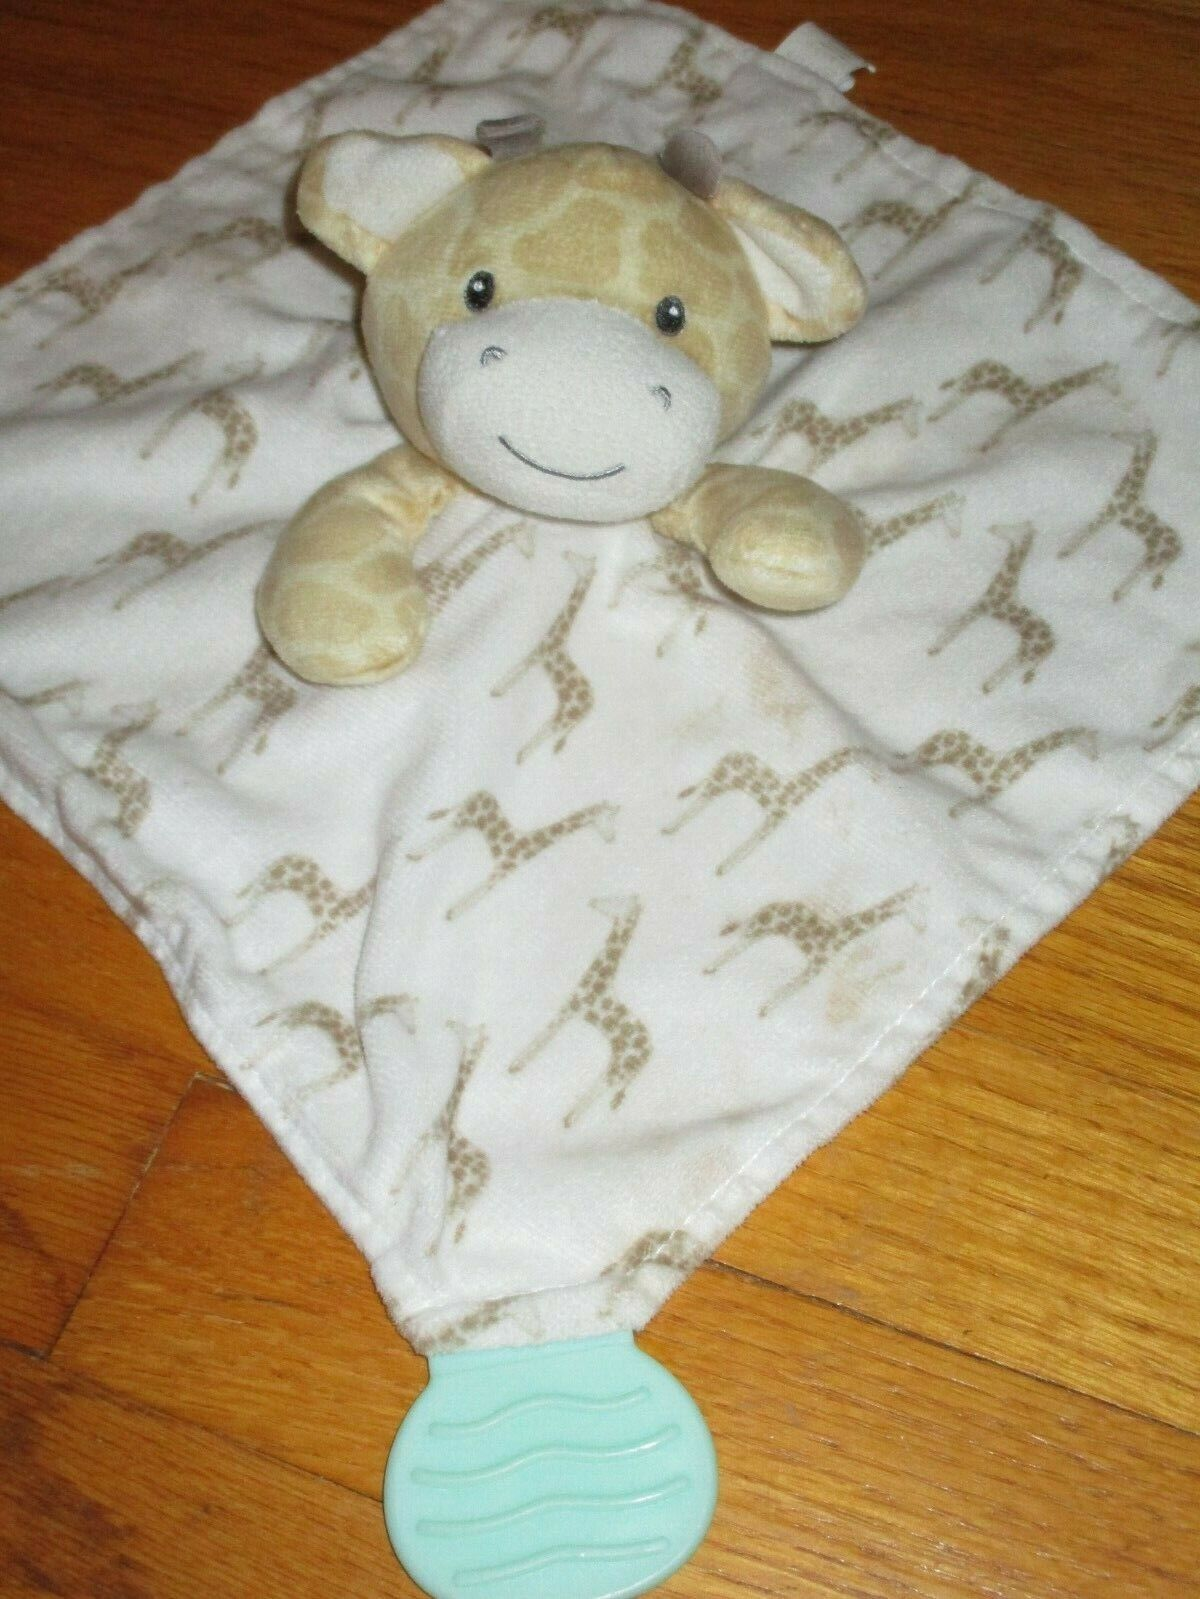 HTF Modern Baby Giraffe Rattle Teether Toy Security Blanket/Lovey - $23.99